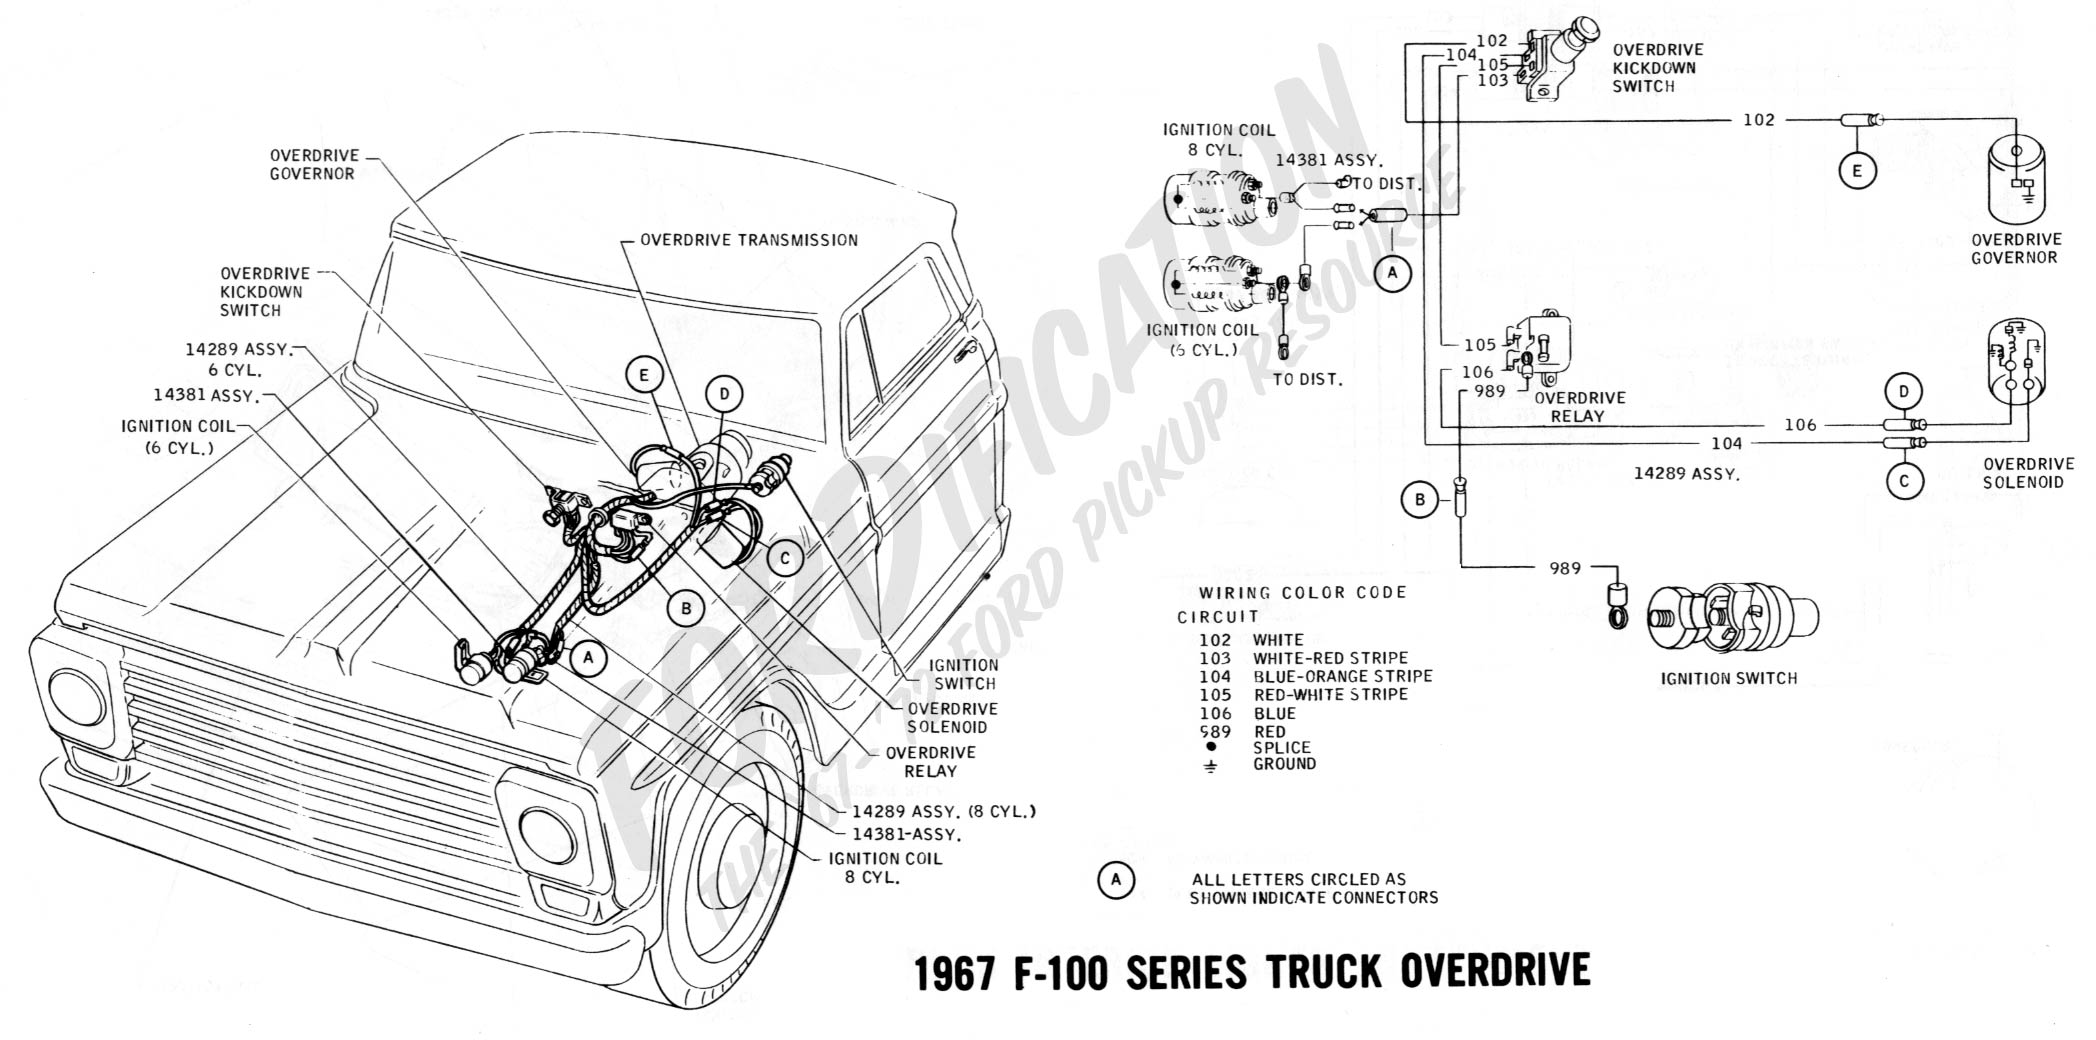 1968 F100 Fuse Box Data Wiring Schema 66 Chevy Under Hood Ford Truck Technical Drawings And Schematics Section H 1967 F 100 Series